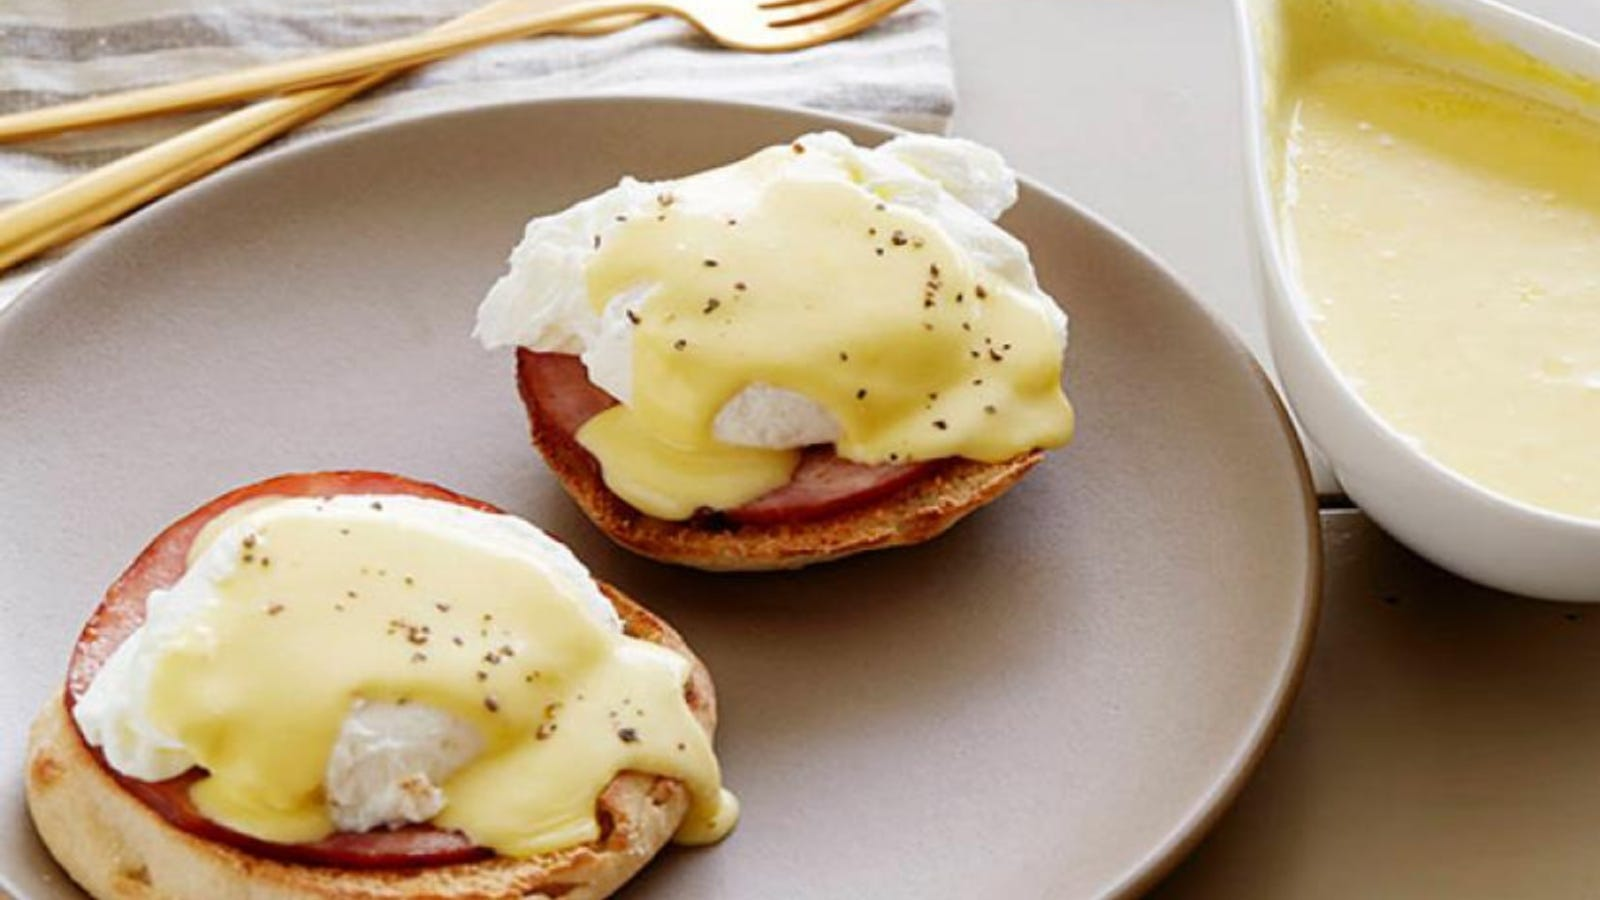 An image of homemade hollandaise sauce poured over hot eggs benedict, with a side of hollandaise